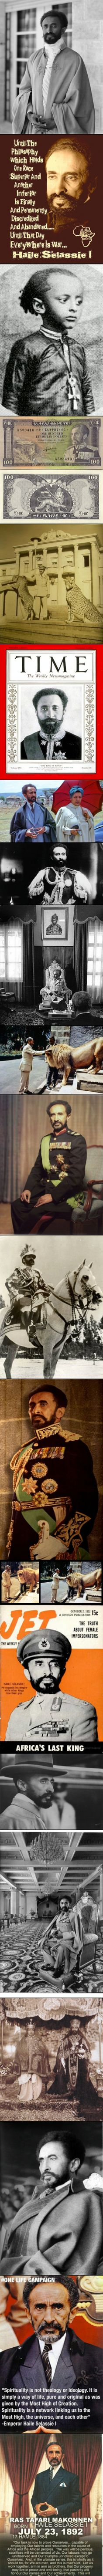 Haile Selassie I  (23 July 1892–27 Aug 1975), born Tafari Makonnen Woldemikael was Ethiopia's regent from 1916 to 1930  Emperor of Ethiopia from 1930 to 1974. He was the heir to a dynasty that traced its origins by tradition from King Solomon  Queen Makeda, Empress of Axum, known in the Abrahamic tradition as theQueen of Sheba. Haile Selassie is a defining figure in both Ethiopian and African history